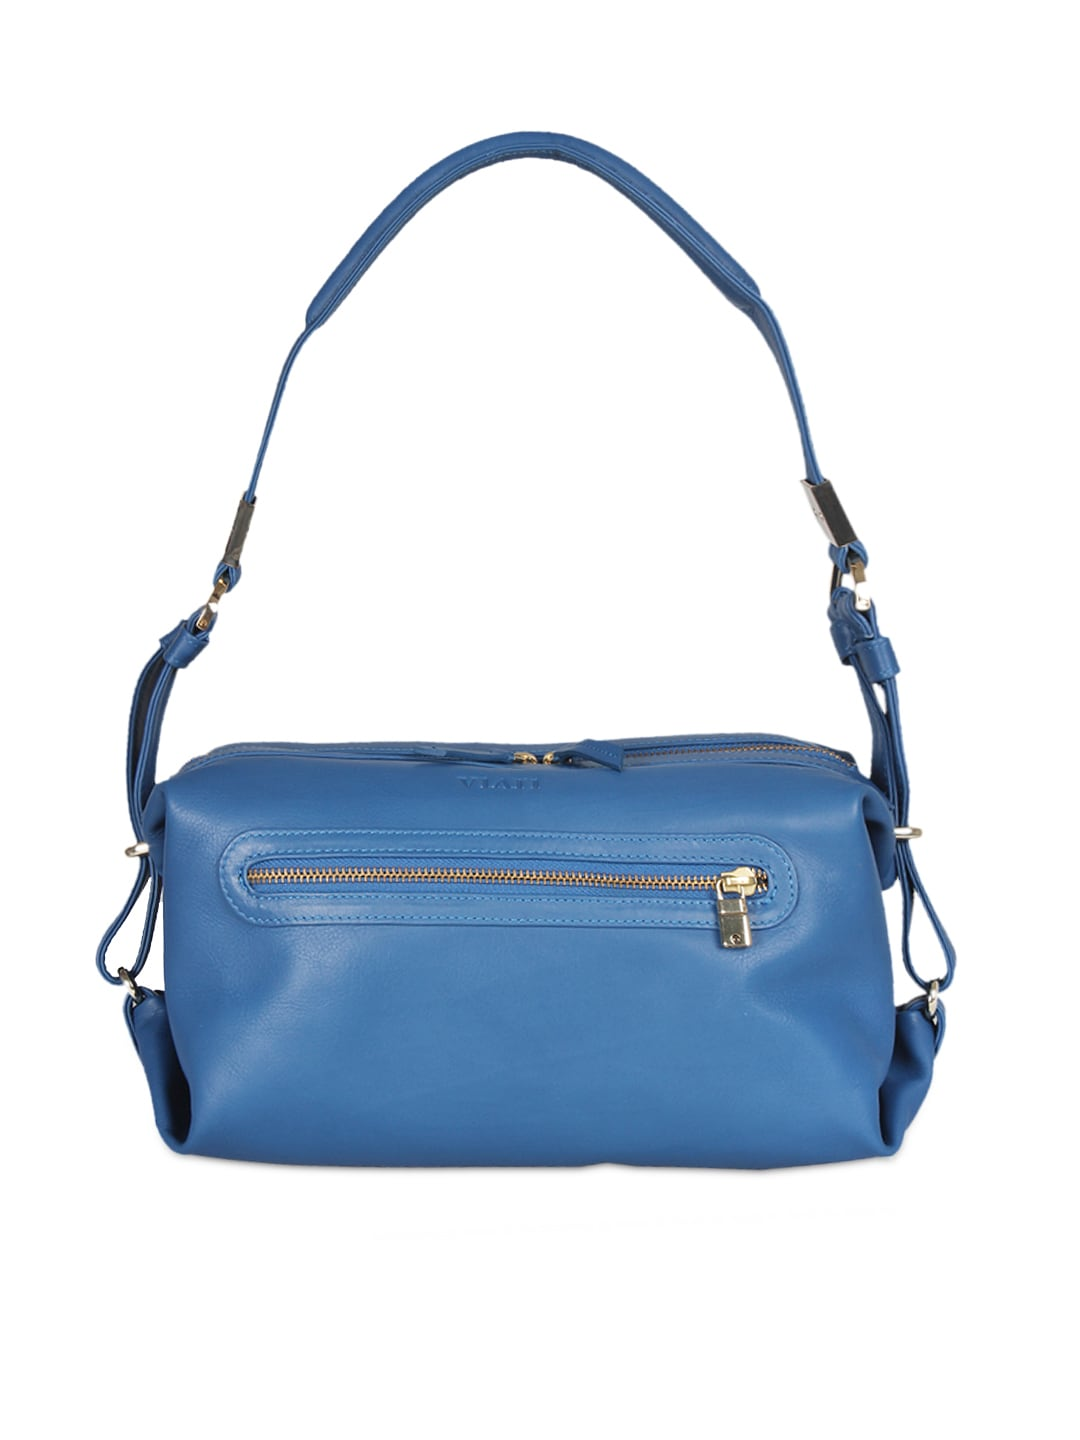 VIARI Blue CANNES Leather Handbag